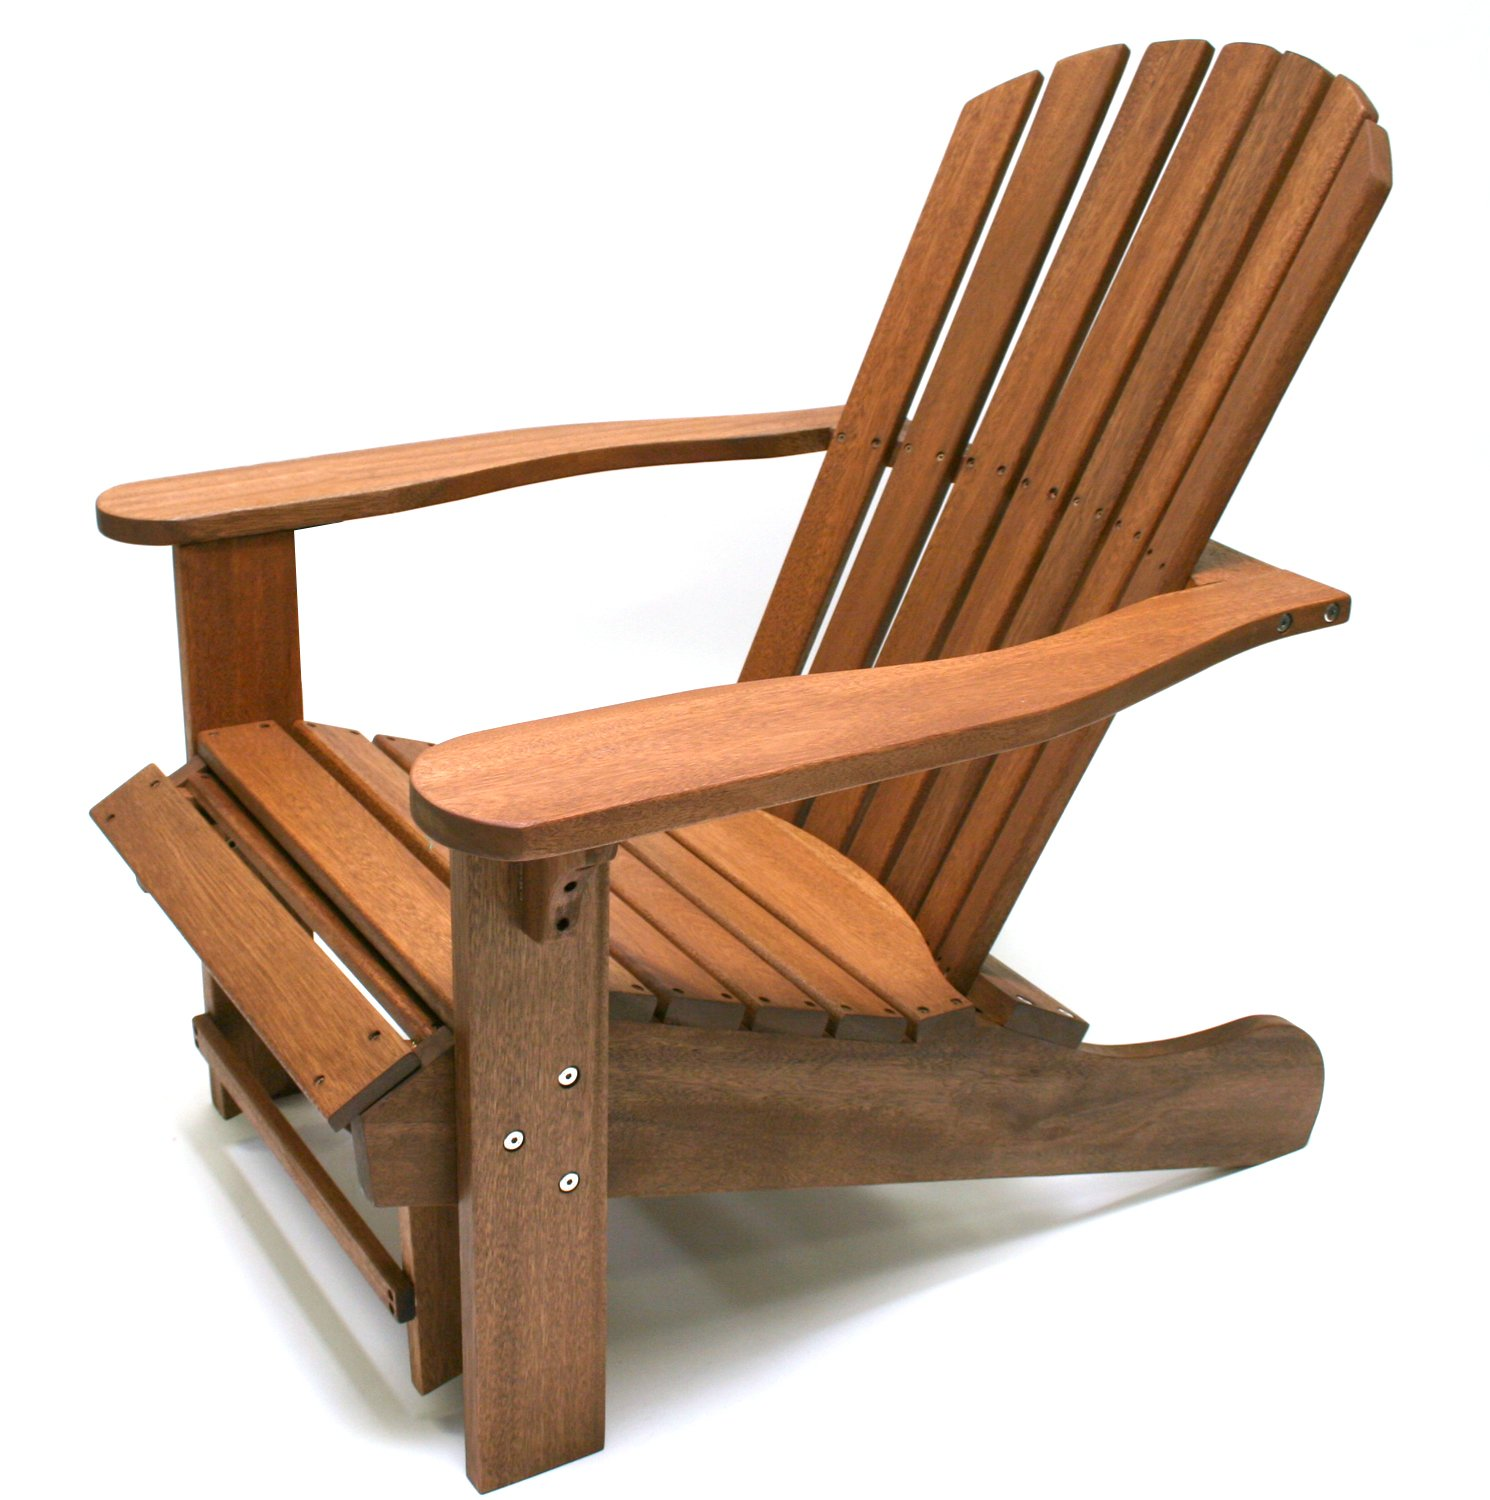 Outdoor Interiors CD3111 Eucalyptus Adirondack Chair and Built In Ottoman by Outdoor Interiors (Image #1)